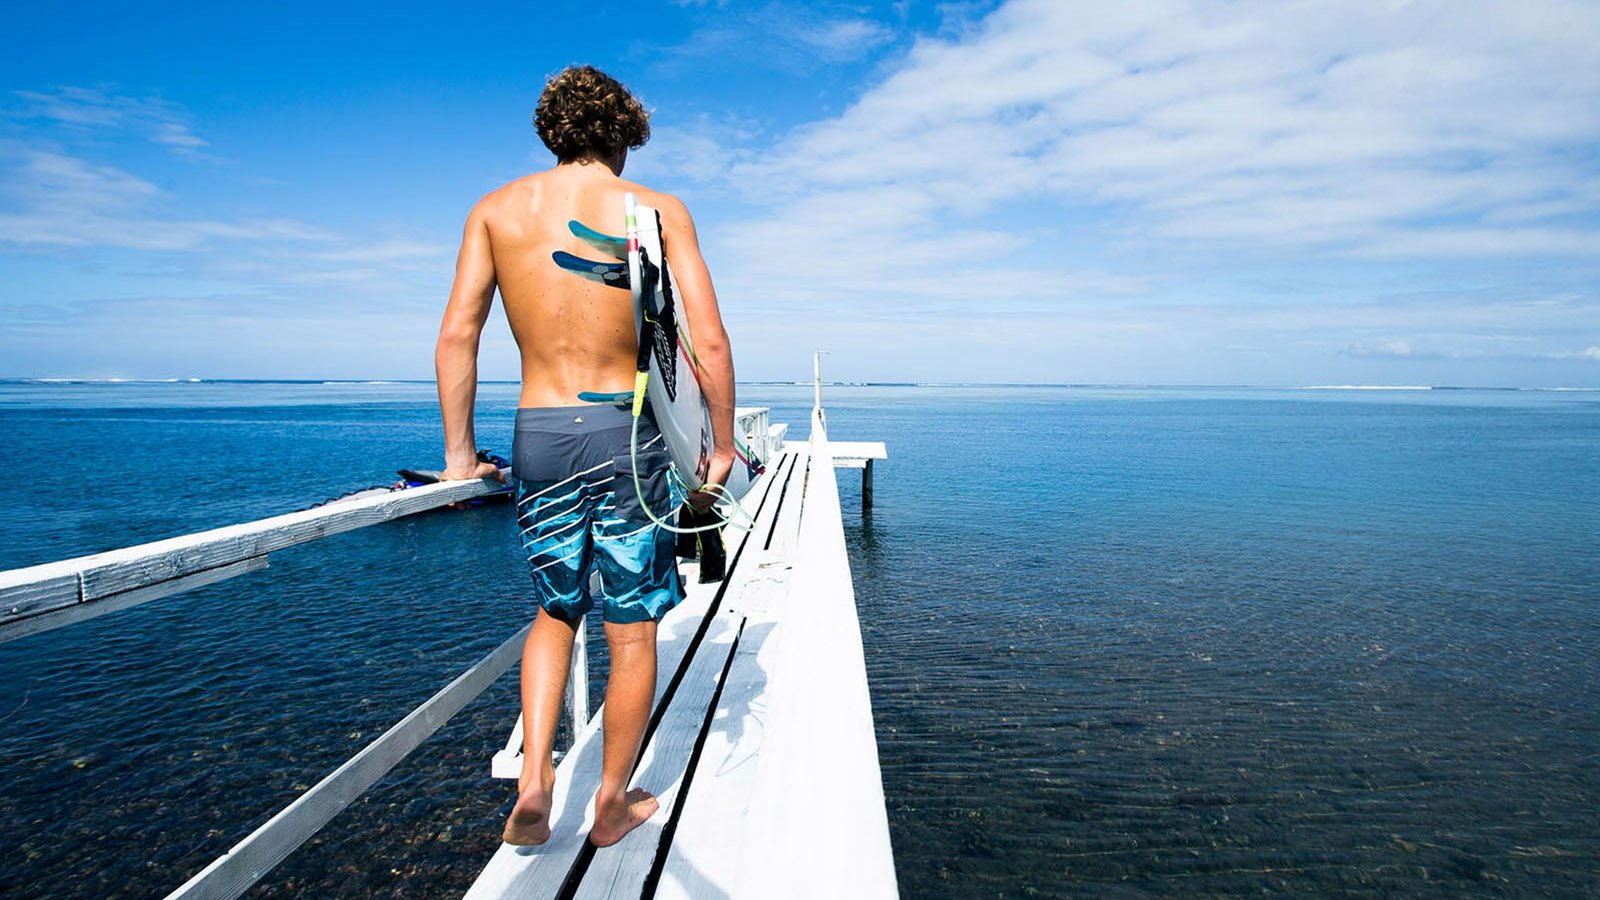 Stop in Island Water Sports for the perfect boardshorts